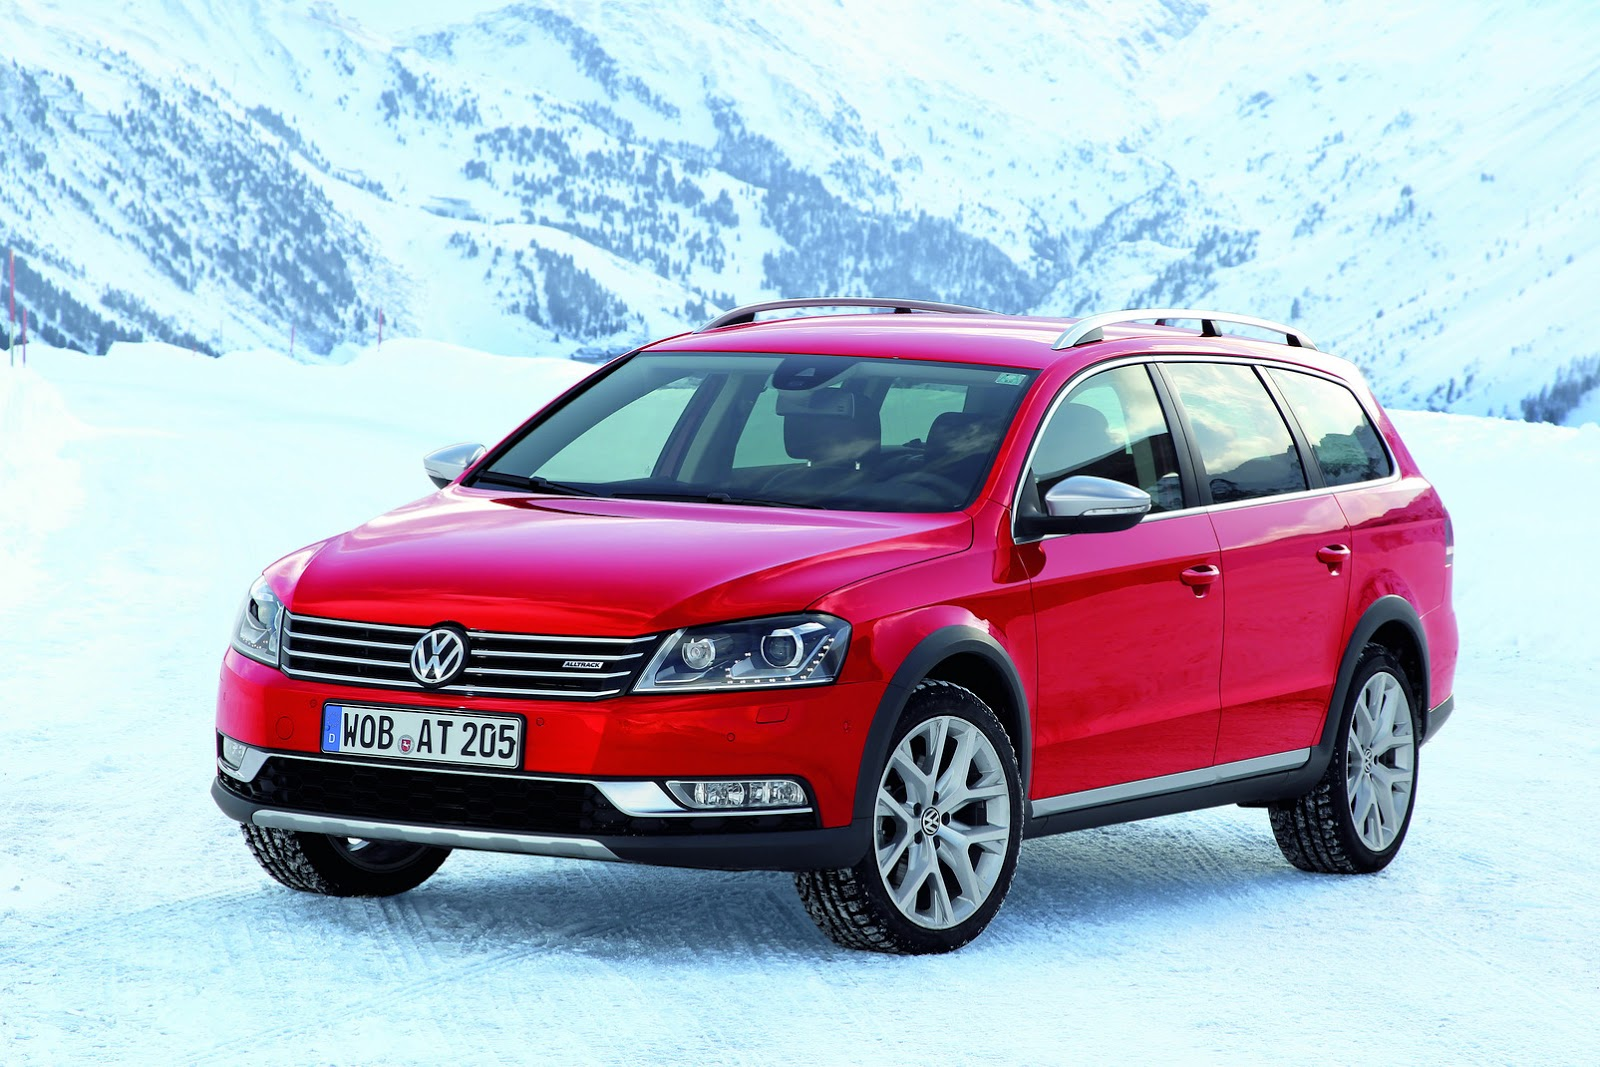 Vw Confirms New Passat Alltrack For Next Year Carscoops